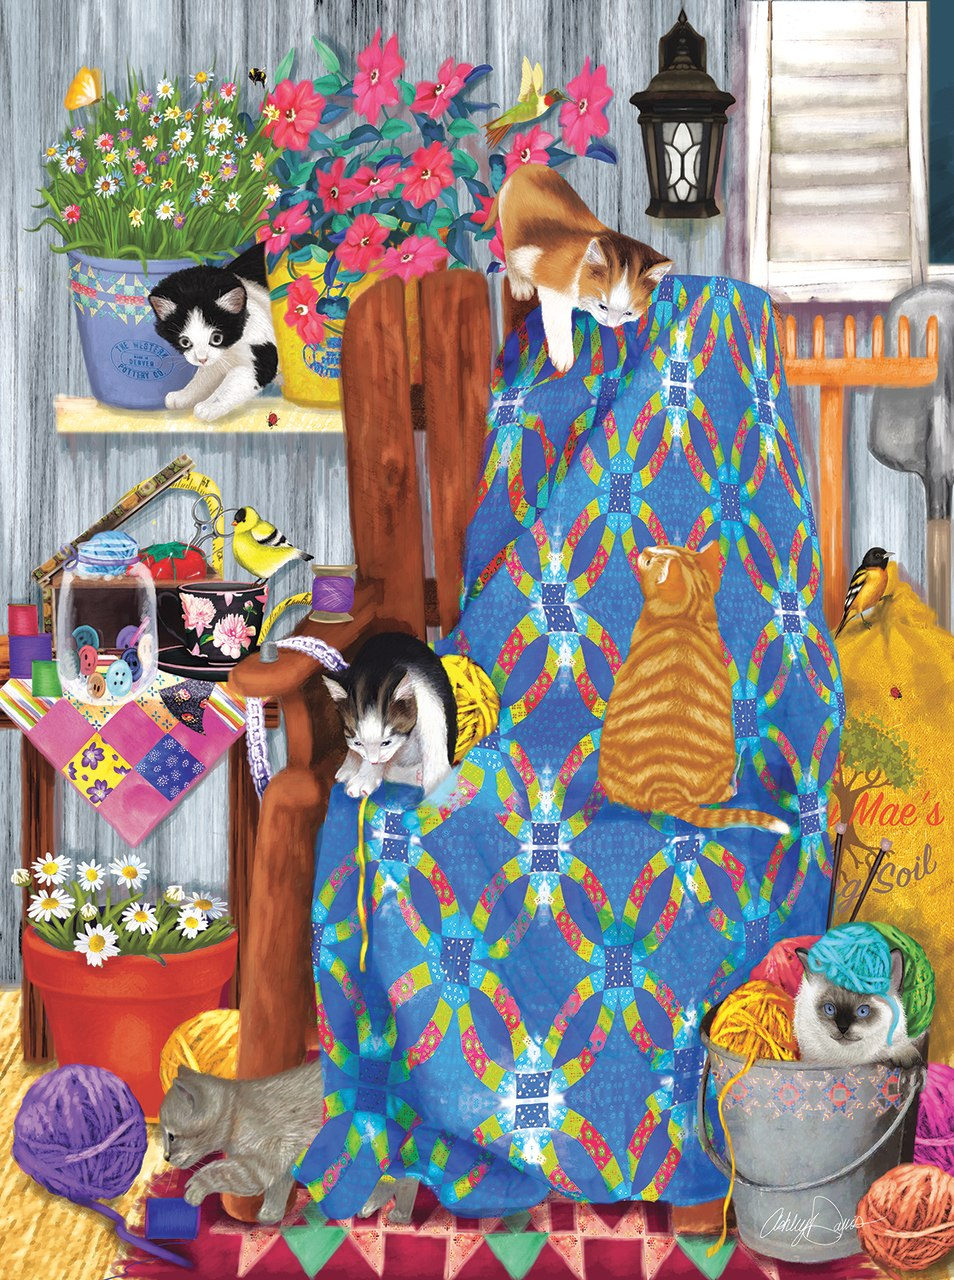 Porch Kittens - 1000pc Jigsaw Puzzle by Sunsout  			  					NEW